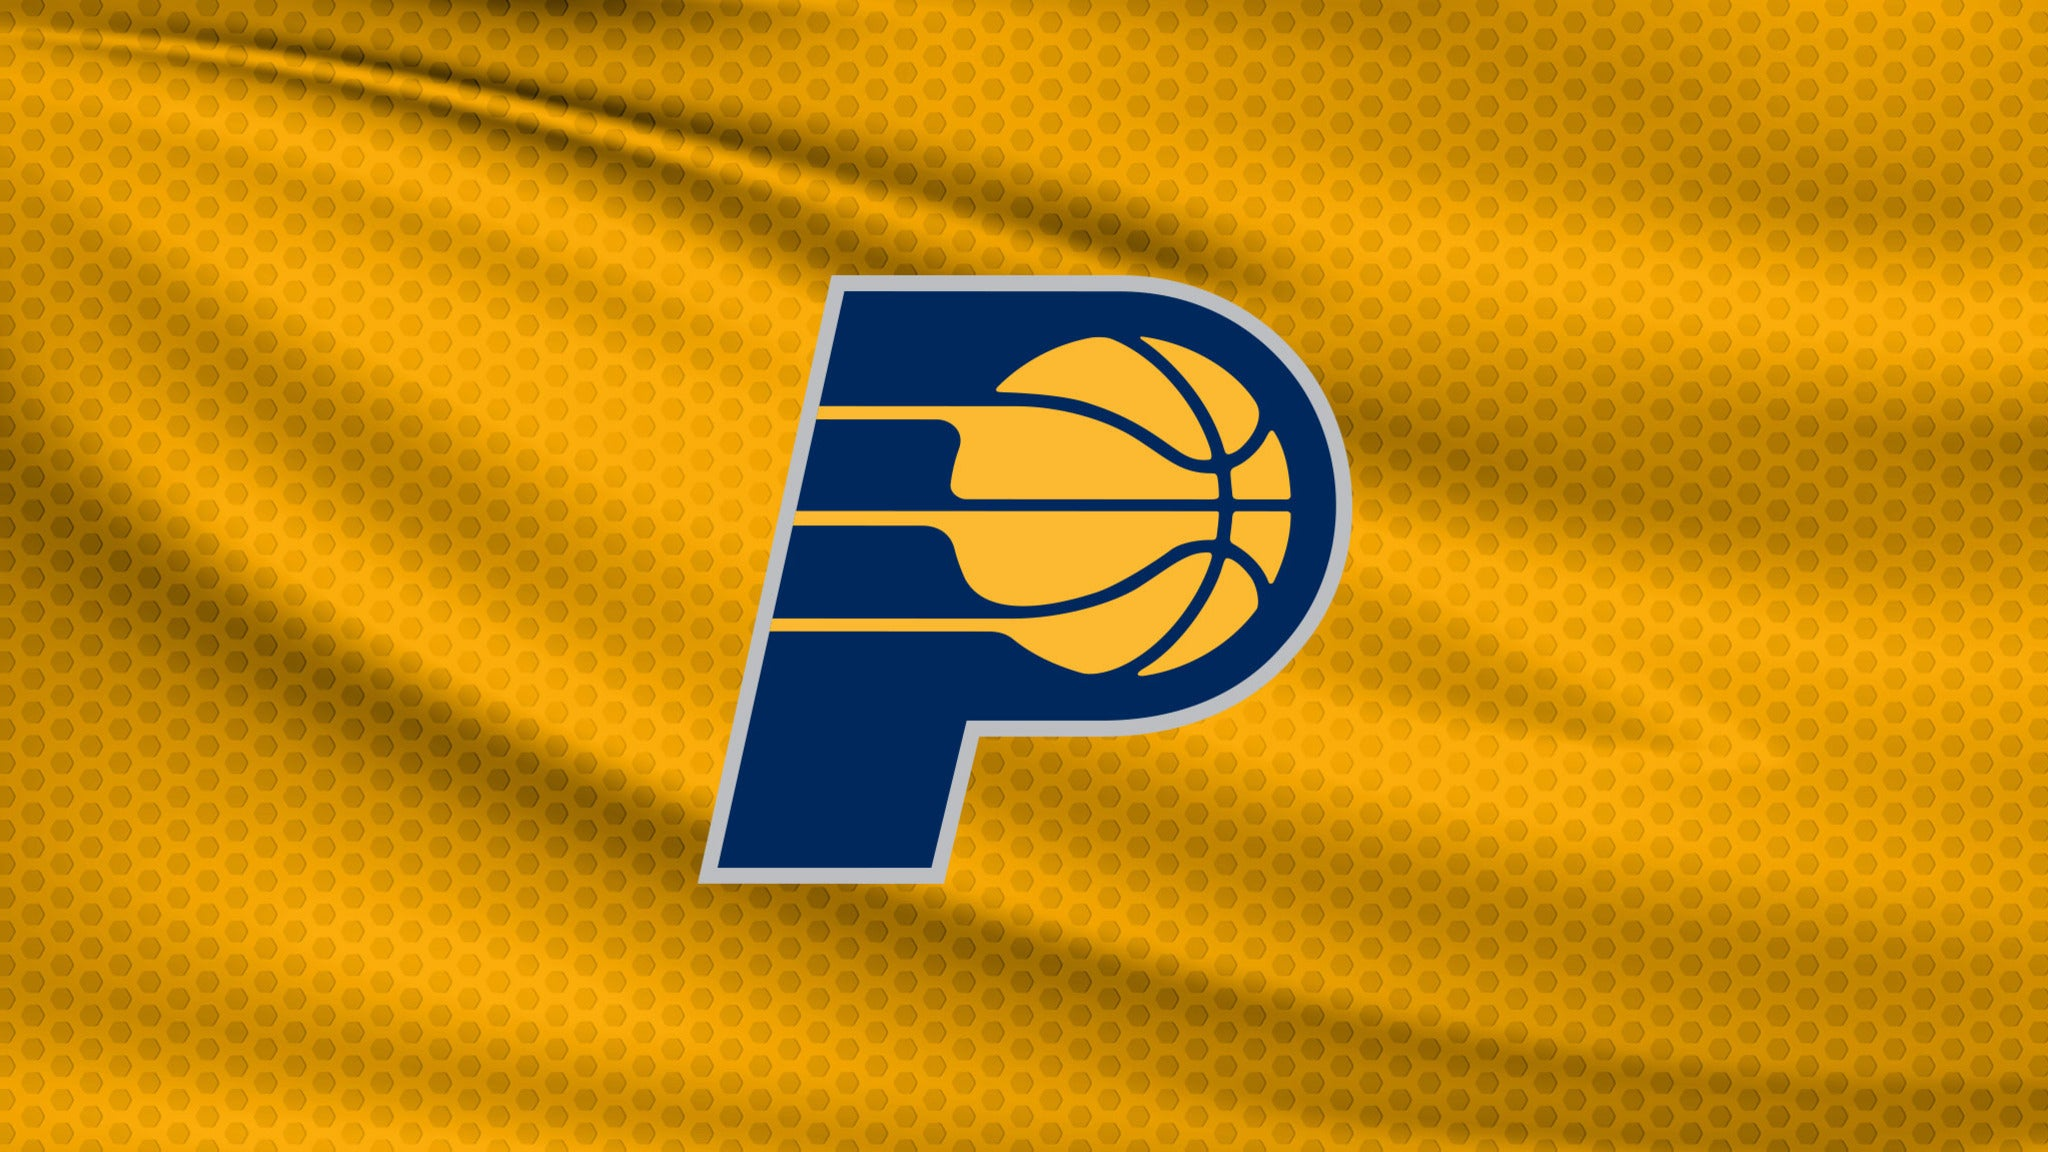 Indiana Pacers vs. Denver Nuggets at Bankers Life Fieldhouse